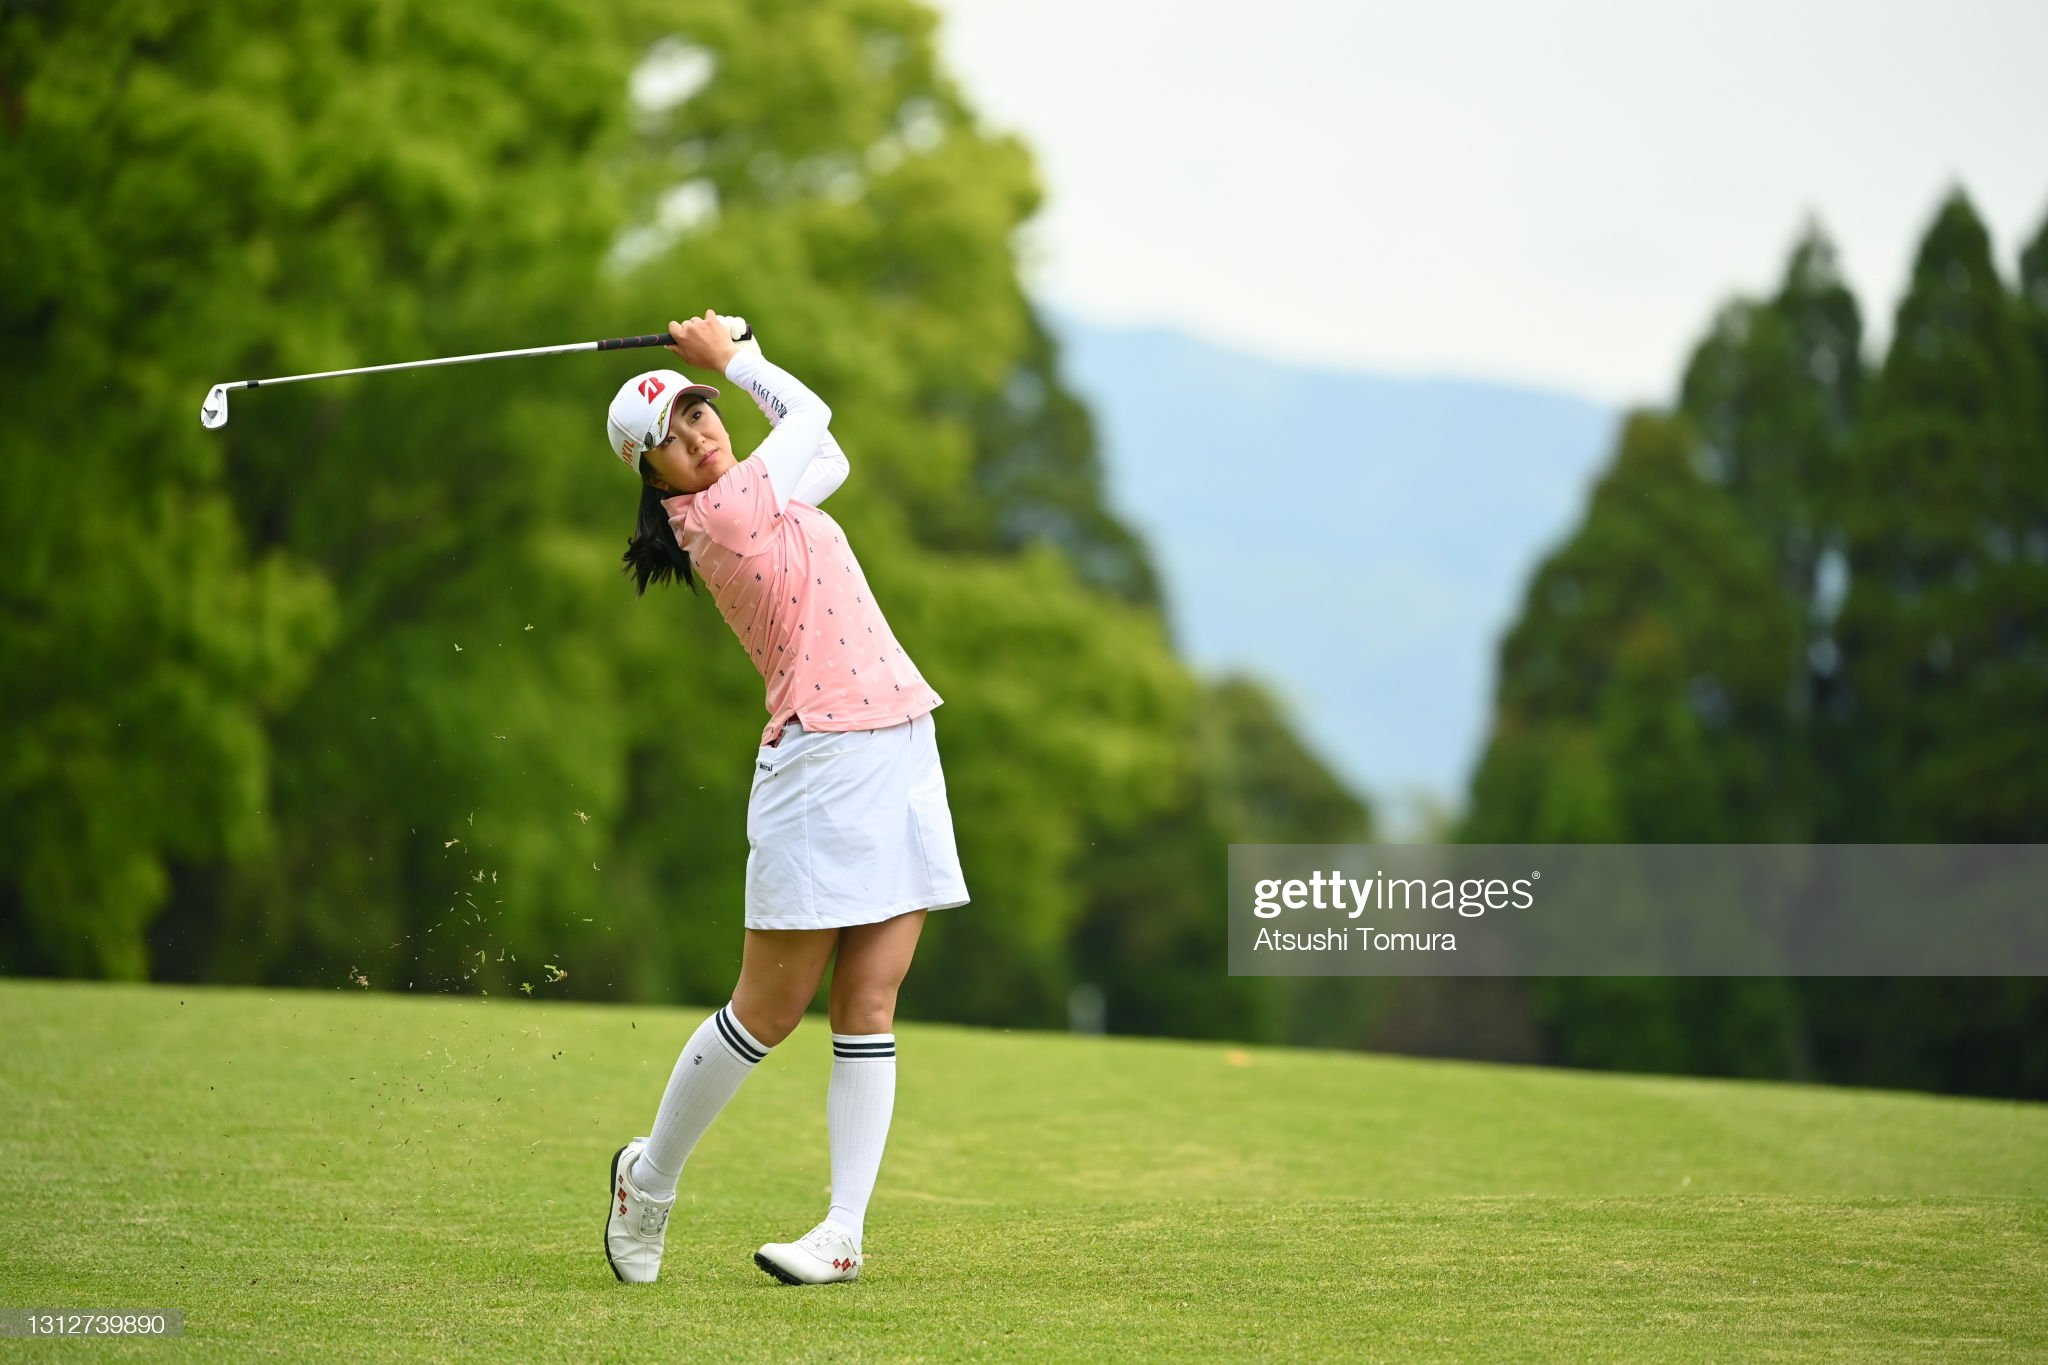 https://media.gettyimages.com/photos/kotone-hori-of-japan-hits-her-second-shot-on-the-2nd-hole-during-the-picture-id1312739890?s=2048x2048